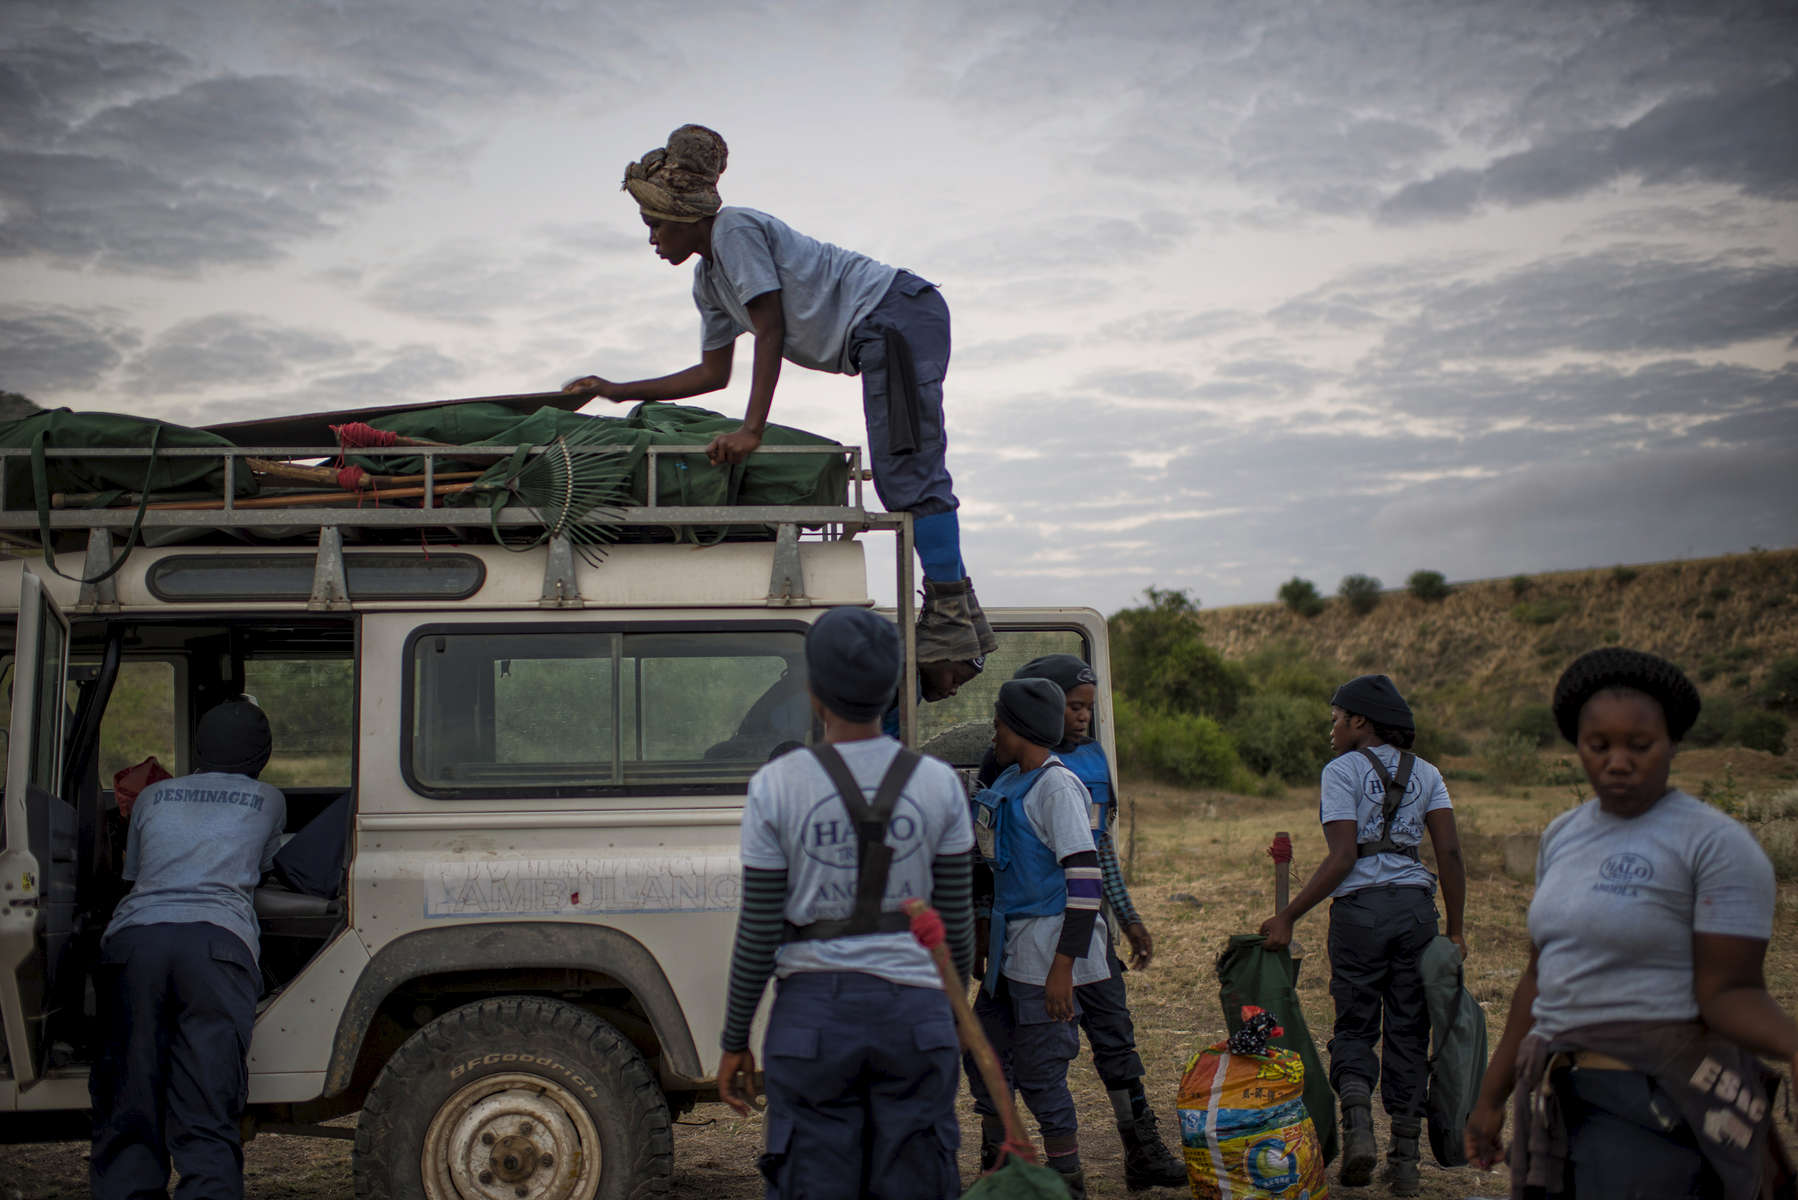 May 4, 2018: KANENGUERERE, ANGOLA - HALO deminer Ana Bimbi Dumbo climbs on the roof of their landrover to start unloading equipment to start their working day in Kanenguerere.  The area was mined during the civil war by government forces to protect the nearby railway line that can be seen in the background, as well as various troop positions. It is currently used by roughly 170 people including village residents and nomadic herders - many of whom are young children - who pass through uncleared land every day.